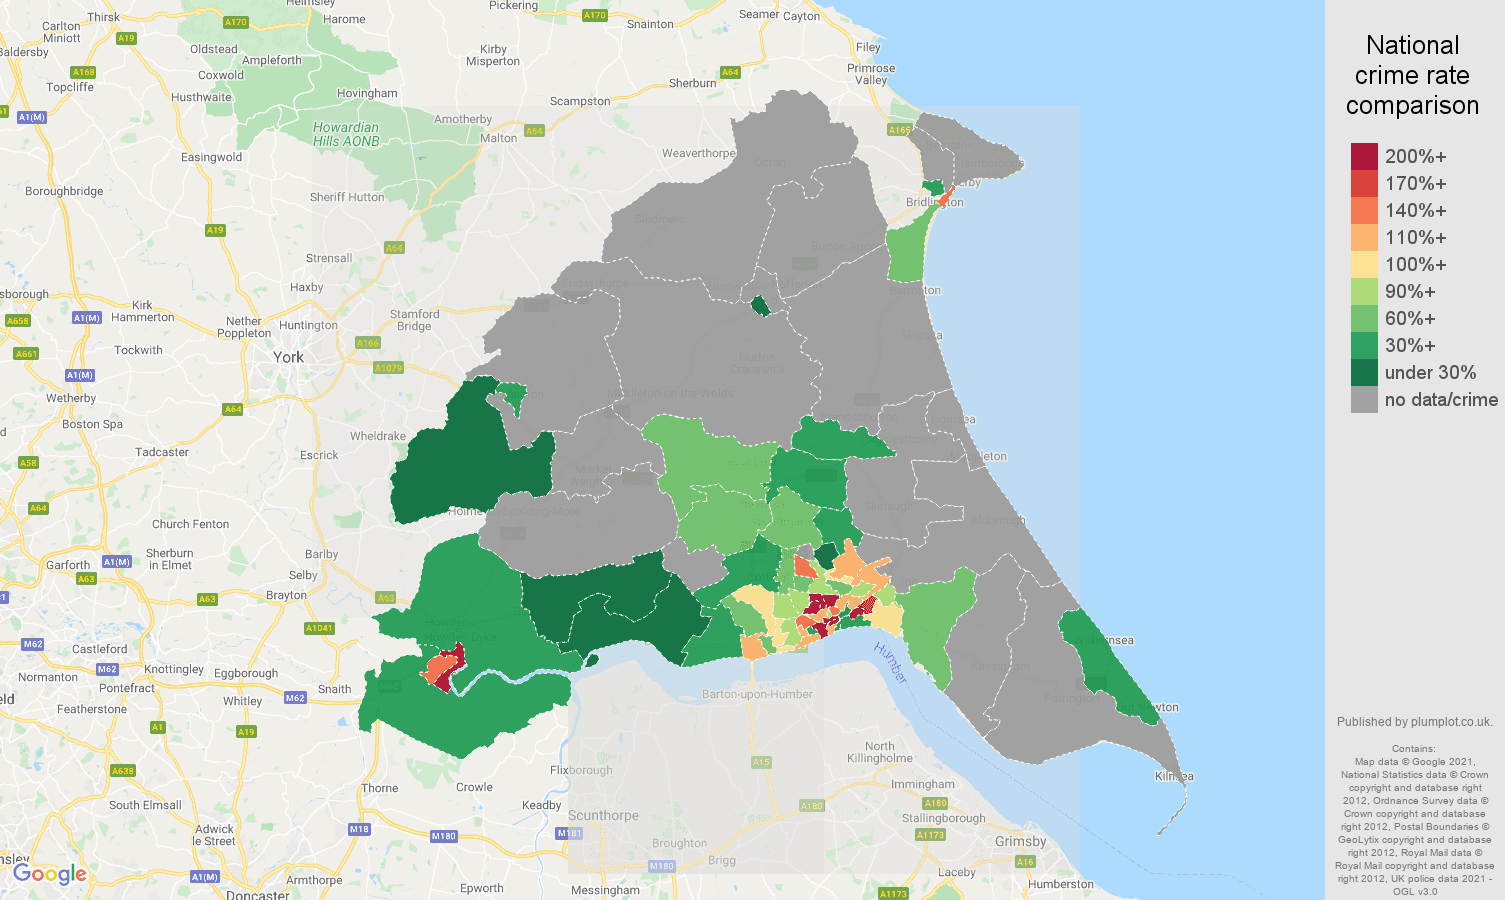 East Riding of Yorkshire bicycle theft crime rate comparison map